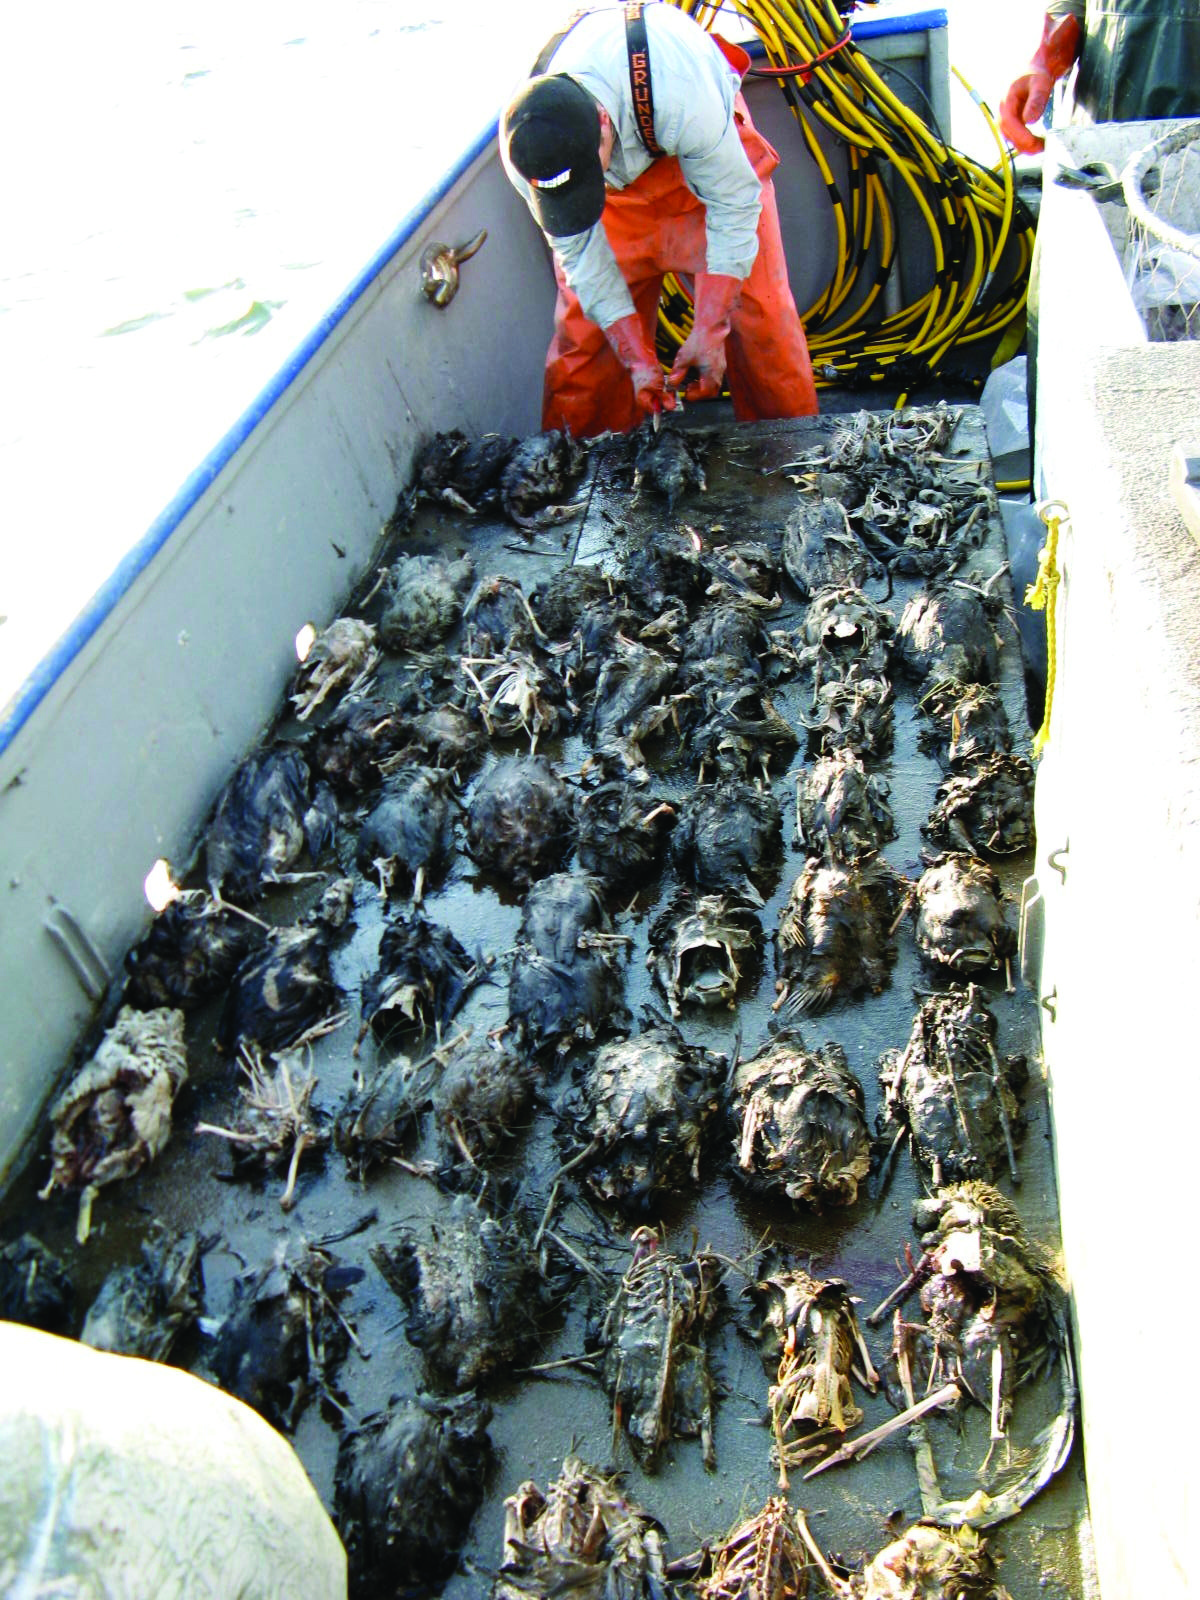 Bird-carcasses-lined-up-on-deck-2008_byNorthwest-Straits-Foundation.jpg